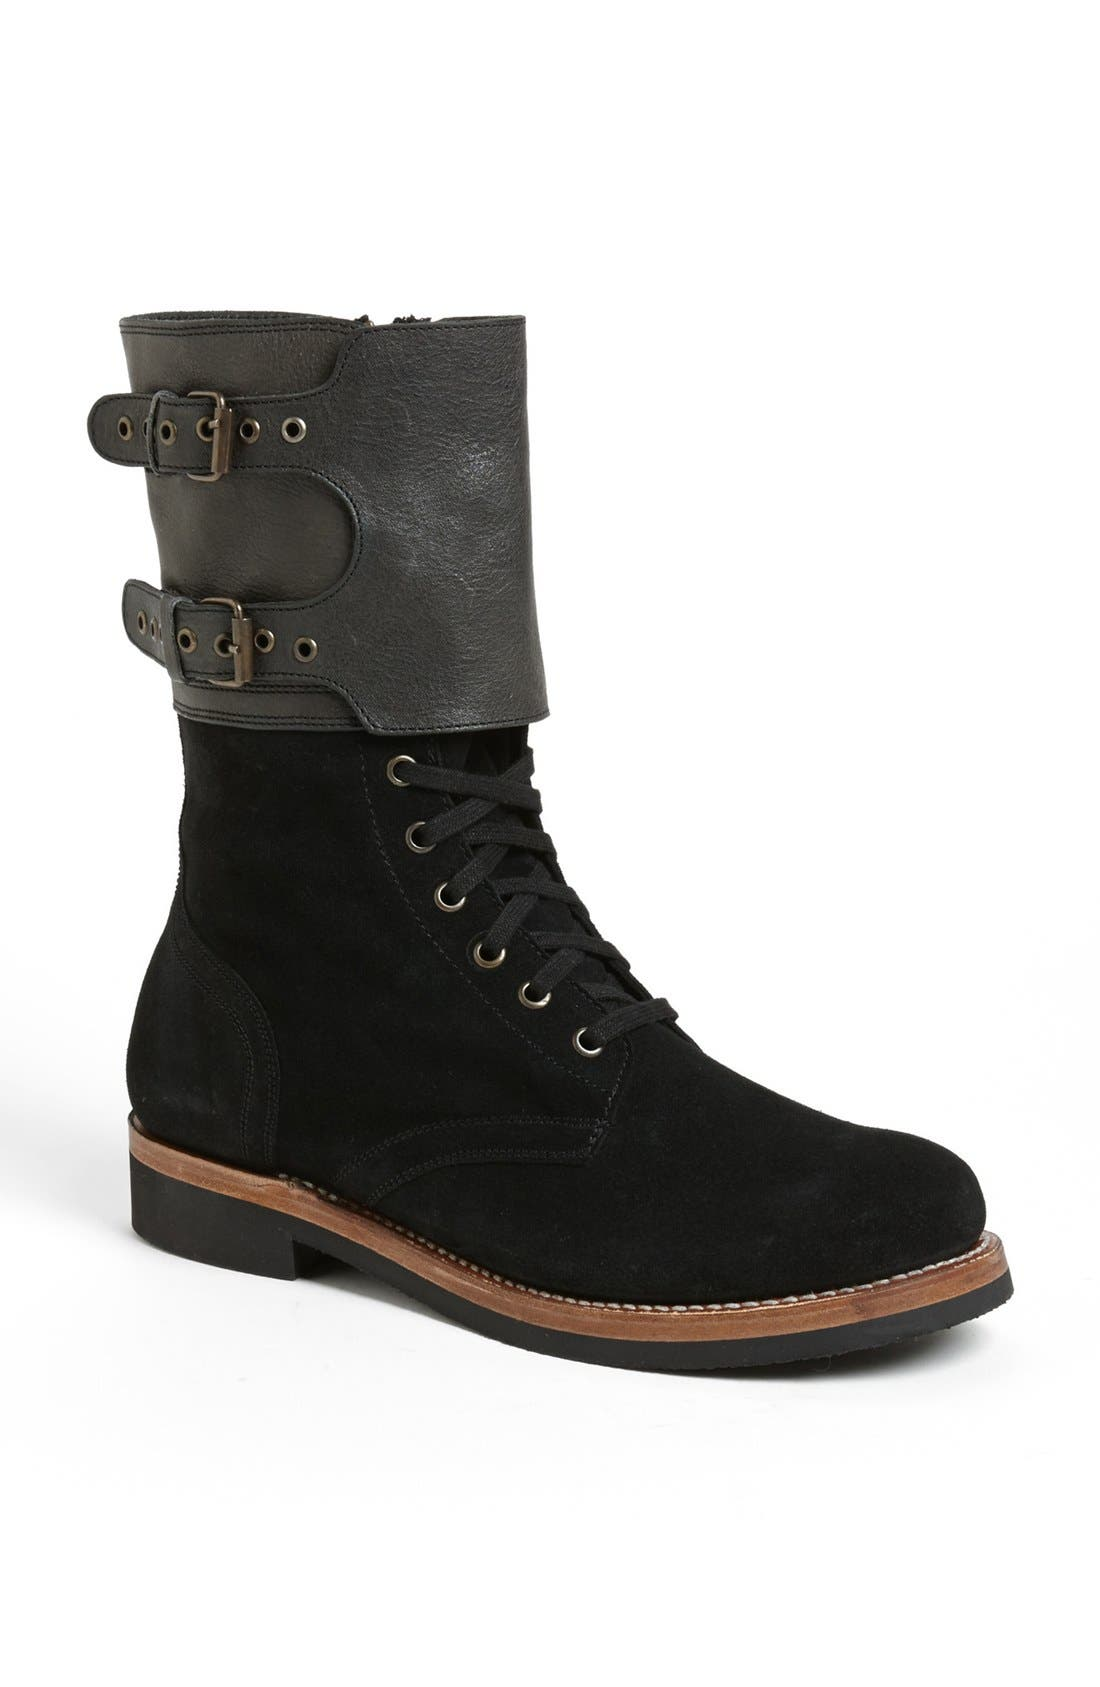 Alternate Image 1 Selected - J.D. Fisk 'Inverness' Round Toe Boot